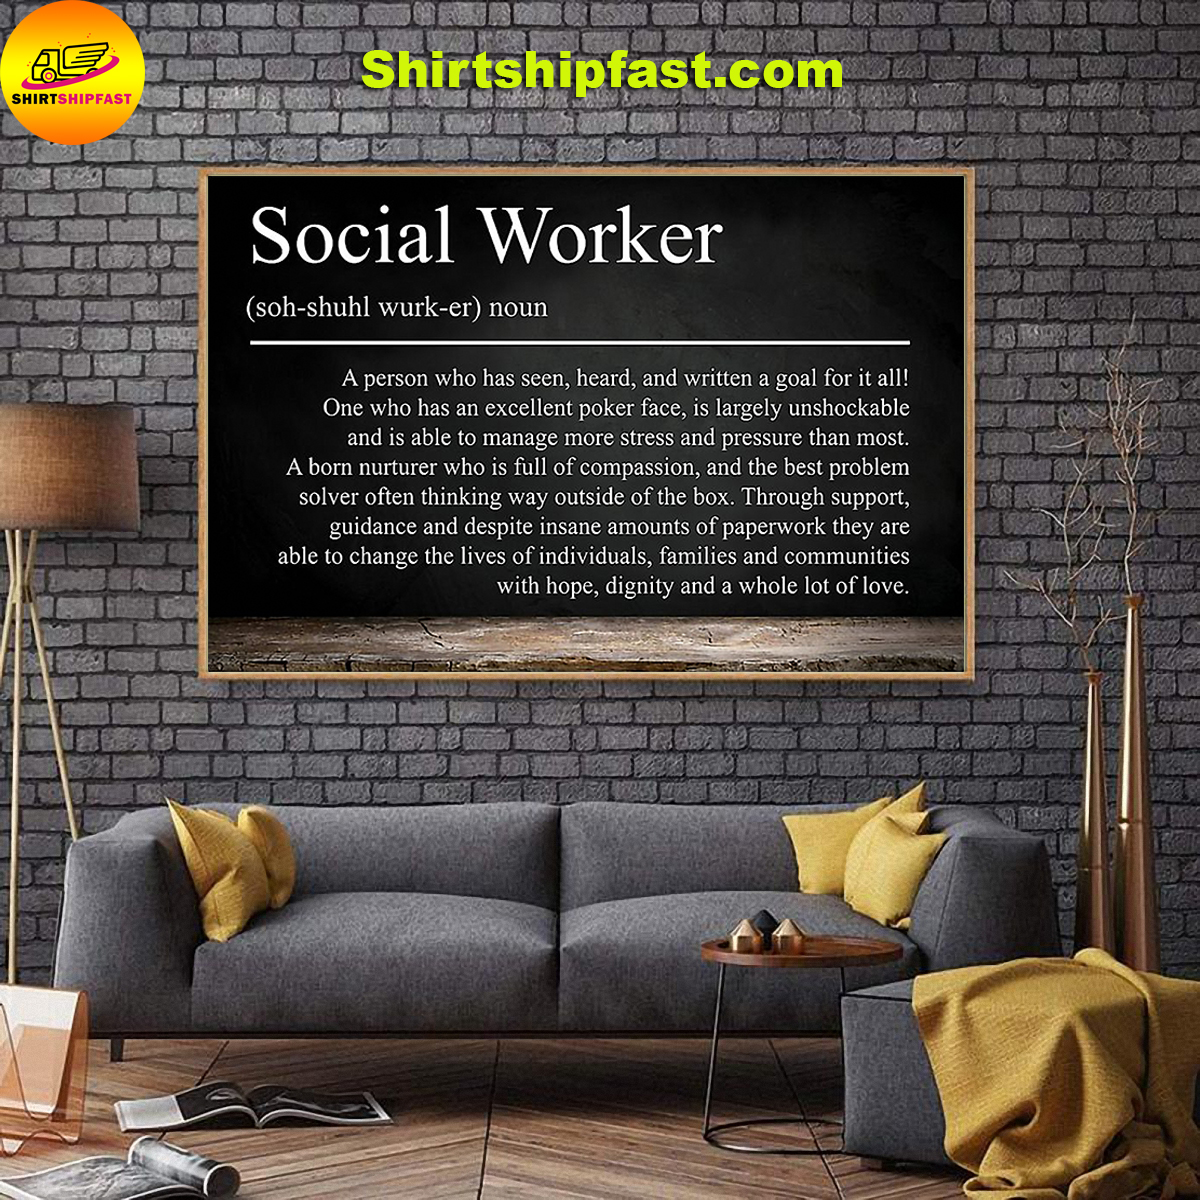 Social worker definition poster - Picture 2